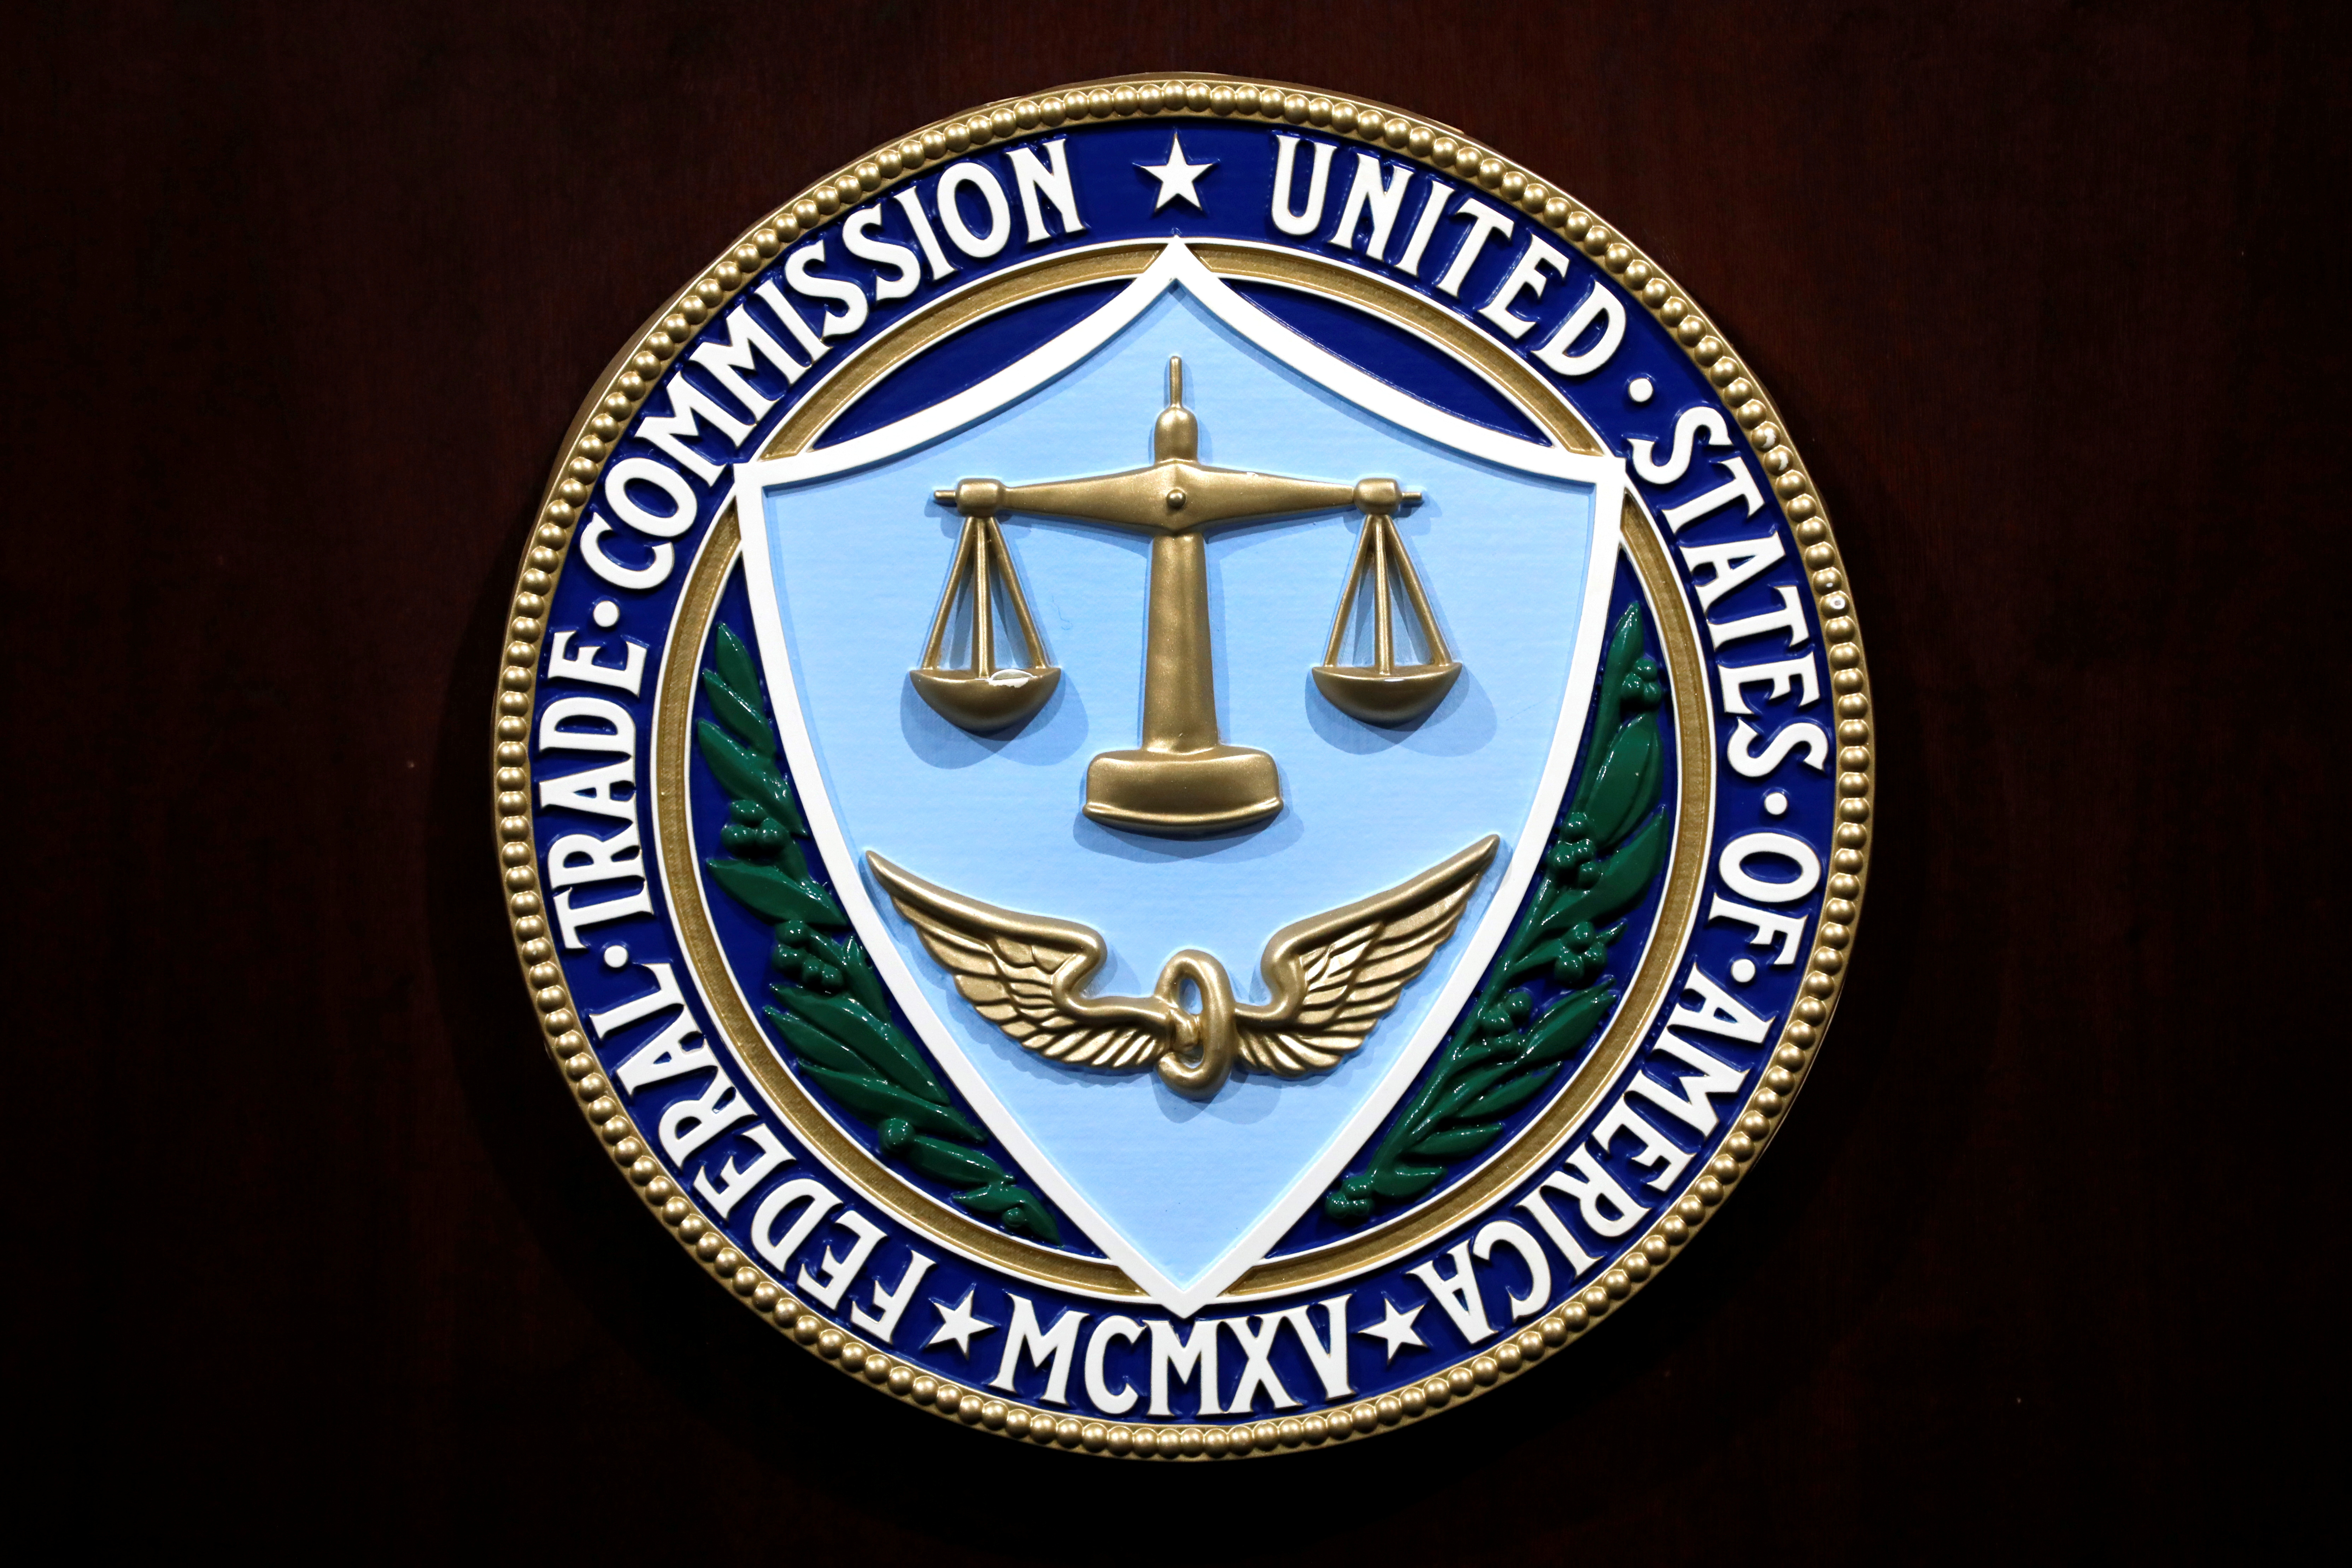 The U.S. Federal Trade Commission seal is seen at a news conference at FTC Headquarters in Washington, U.S., July 24, 2019. REUTERS/Yuri Gripas/File Photo